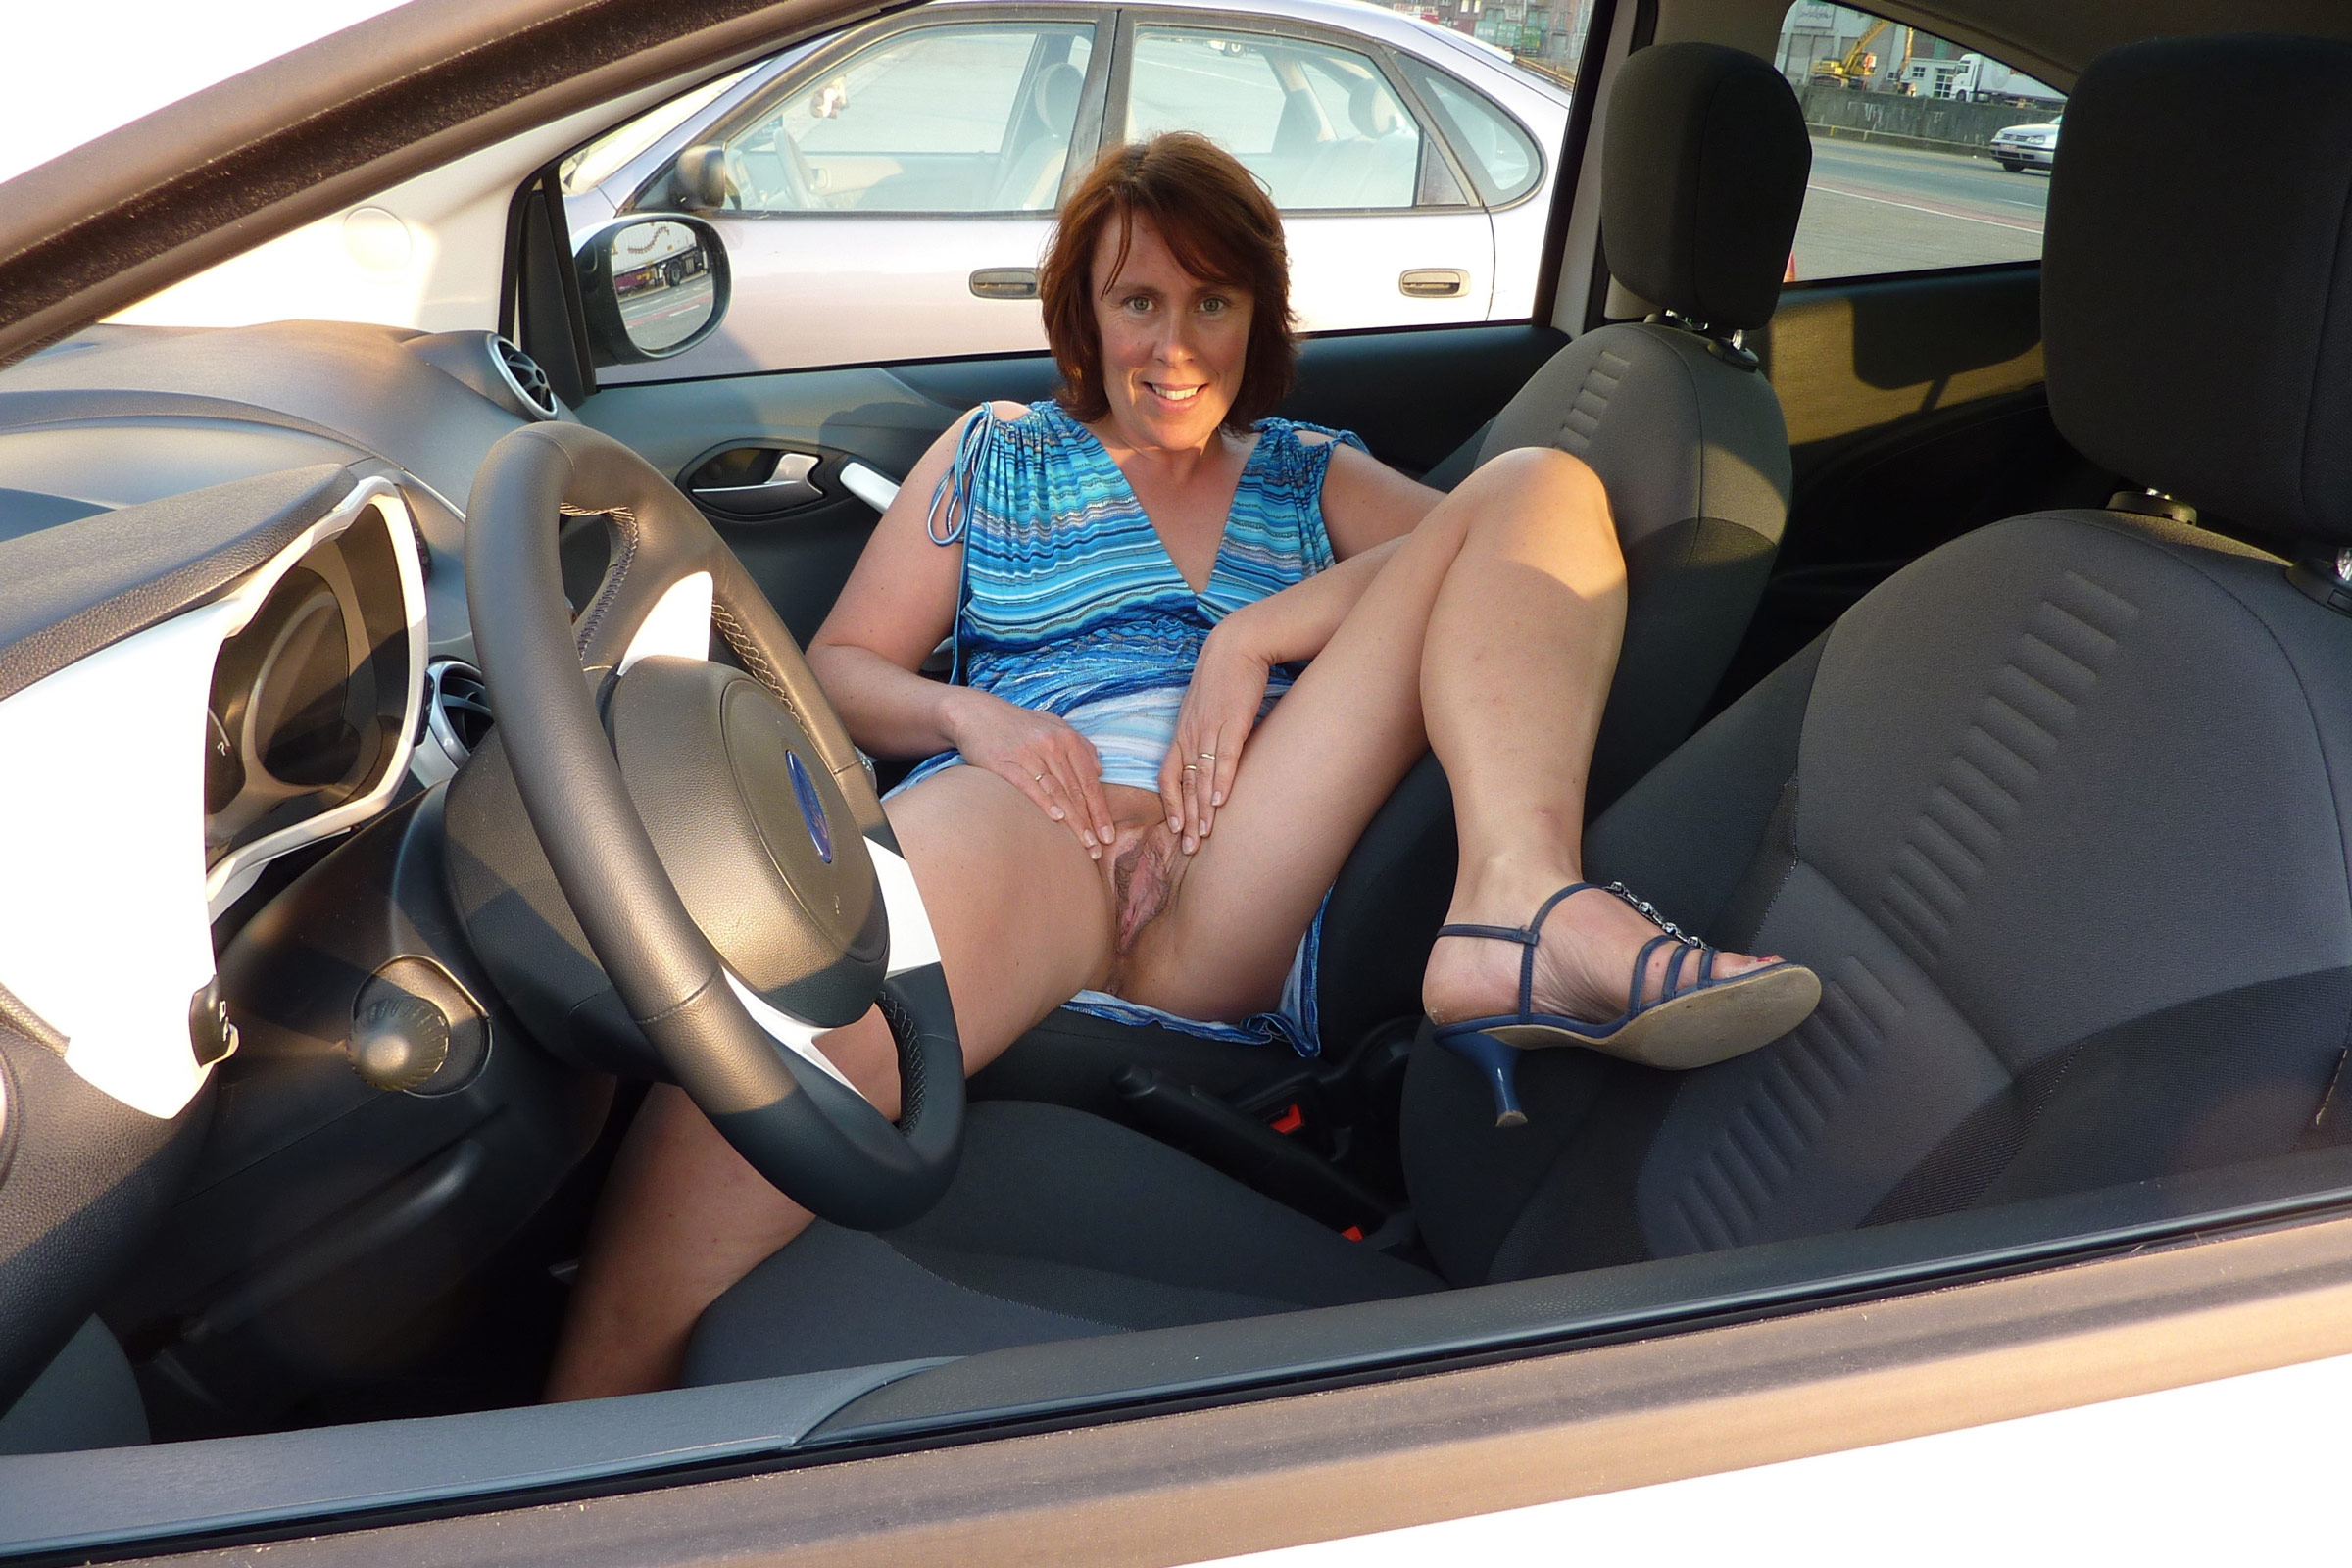 On car naked mature a women working